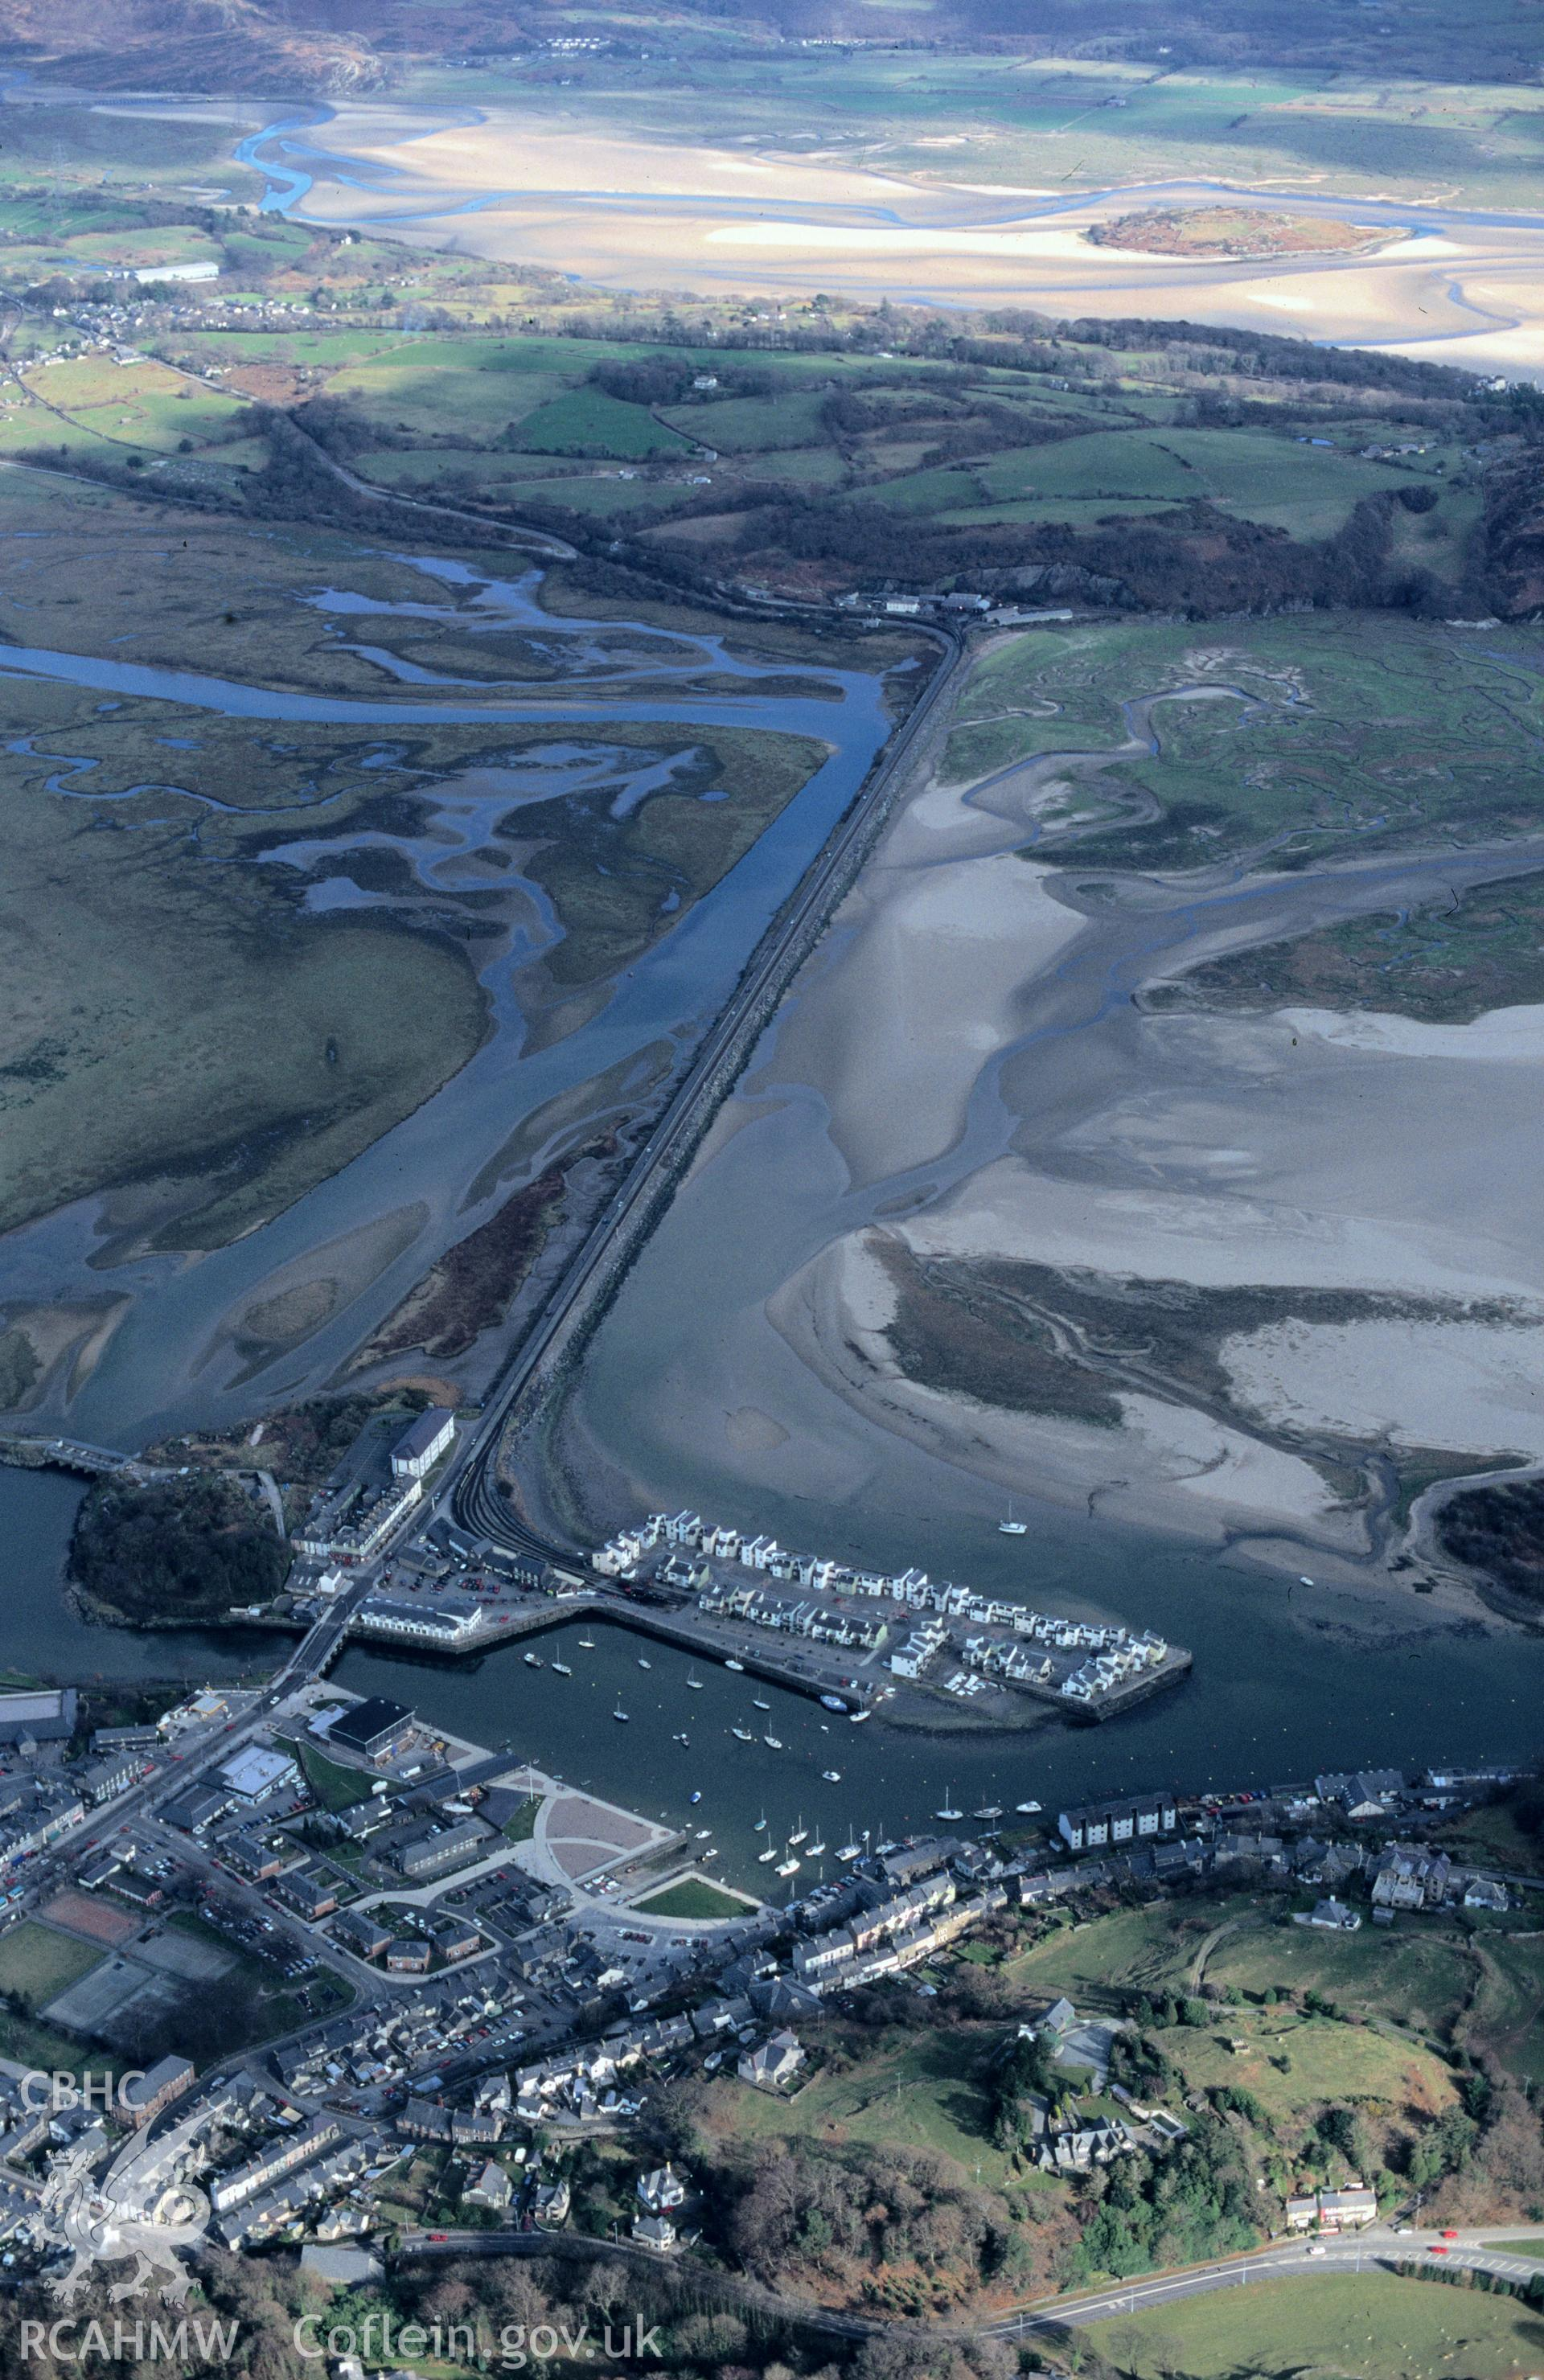 RCAHMW colour slide oblique aerial photograph of Traeth Mawr Embankment, Porthmadoc;Penrhyndeudraeth, taken by C.R.Musson on the 30/03/1996